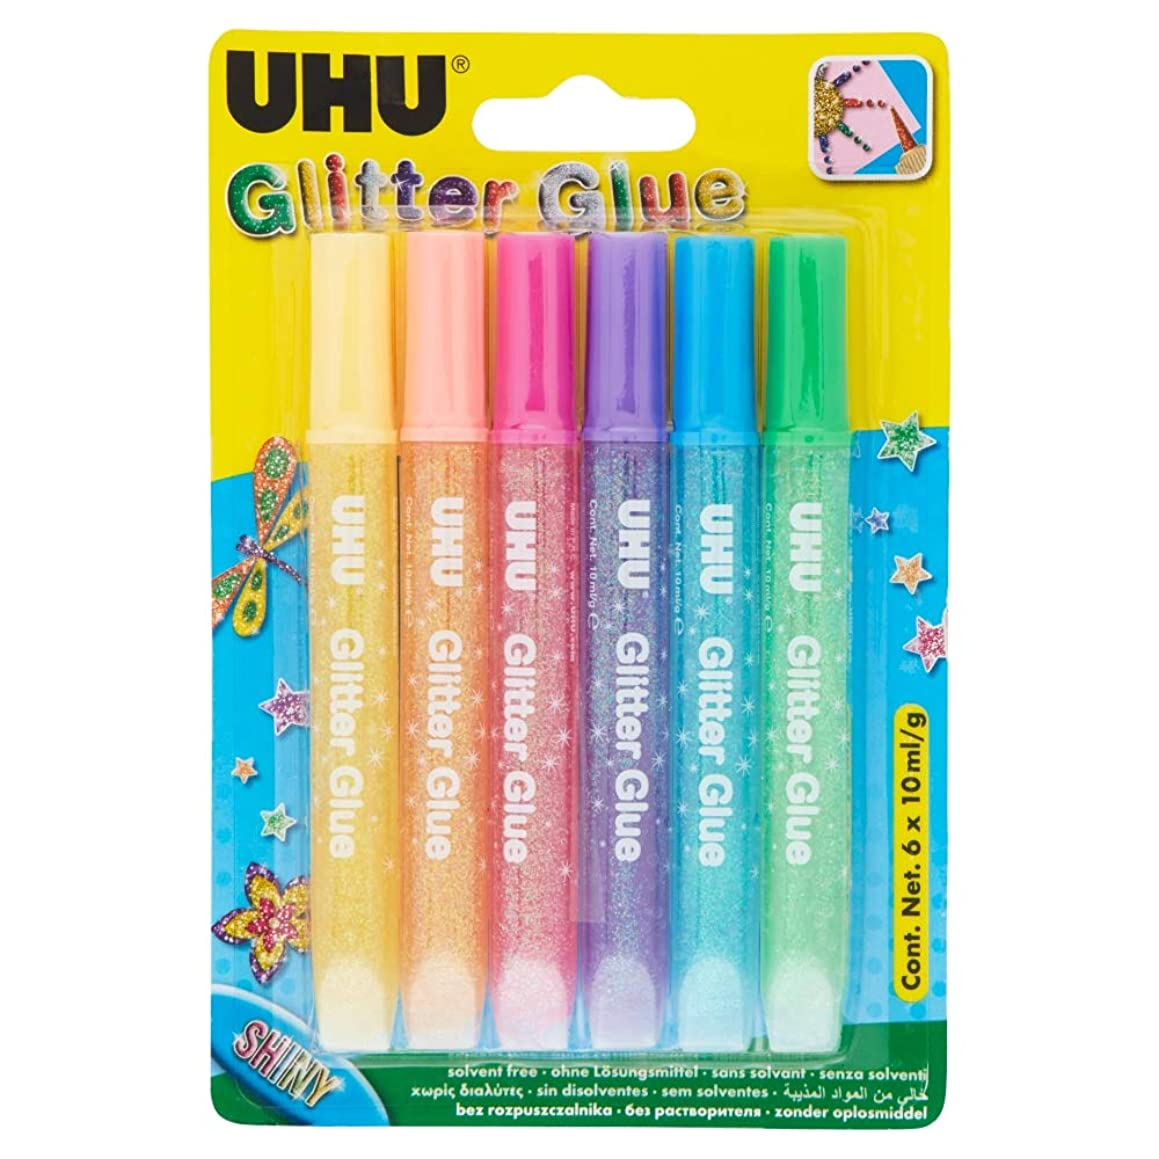 Uhu 39110 6 x 10 ml Shiny YC Glitter Glue